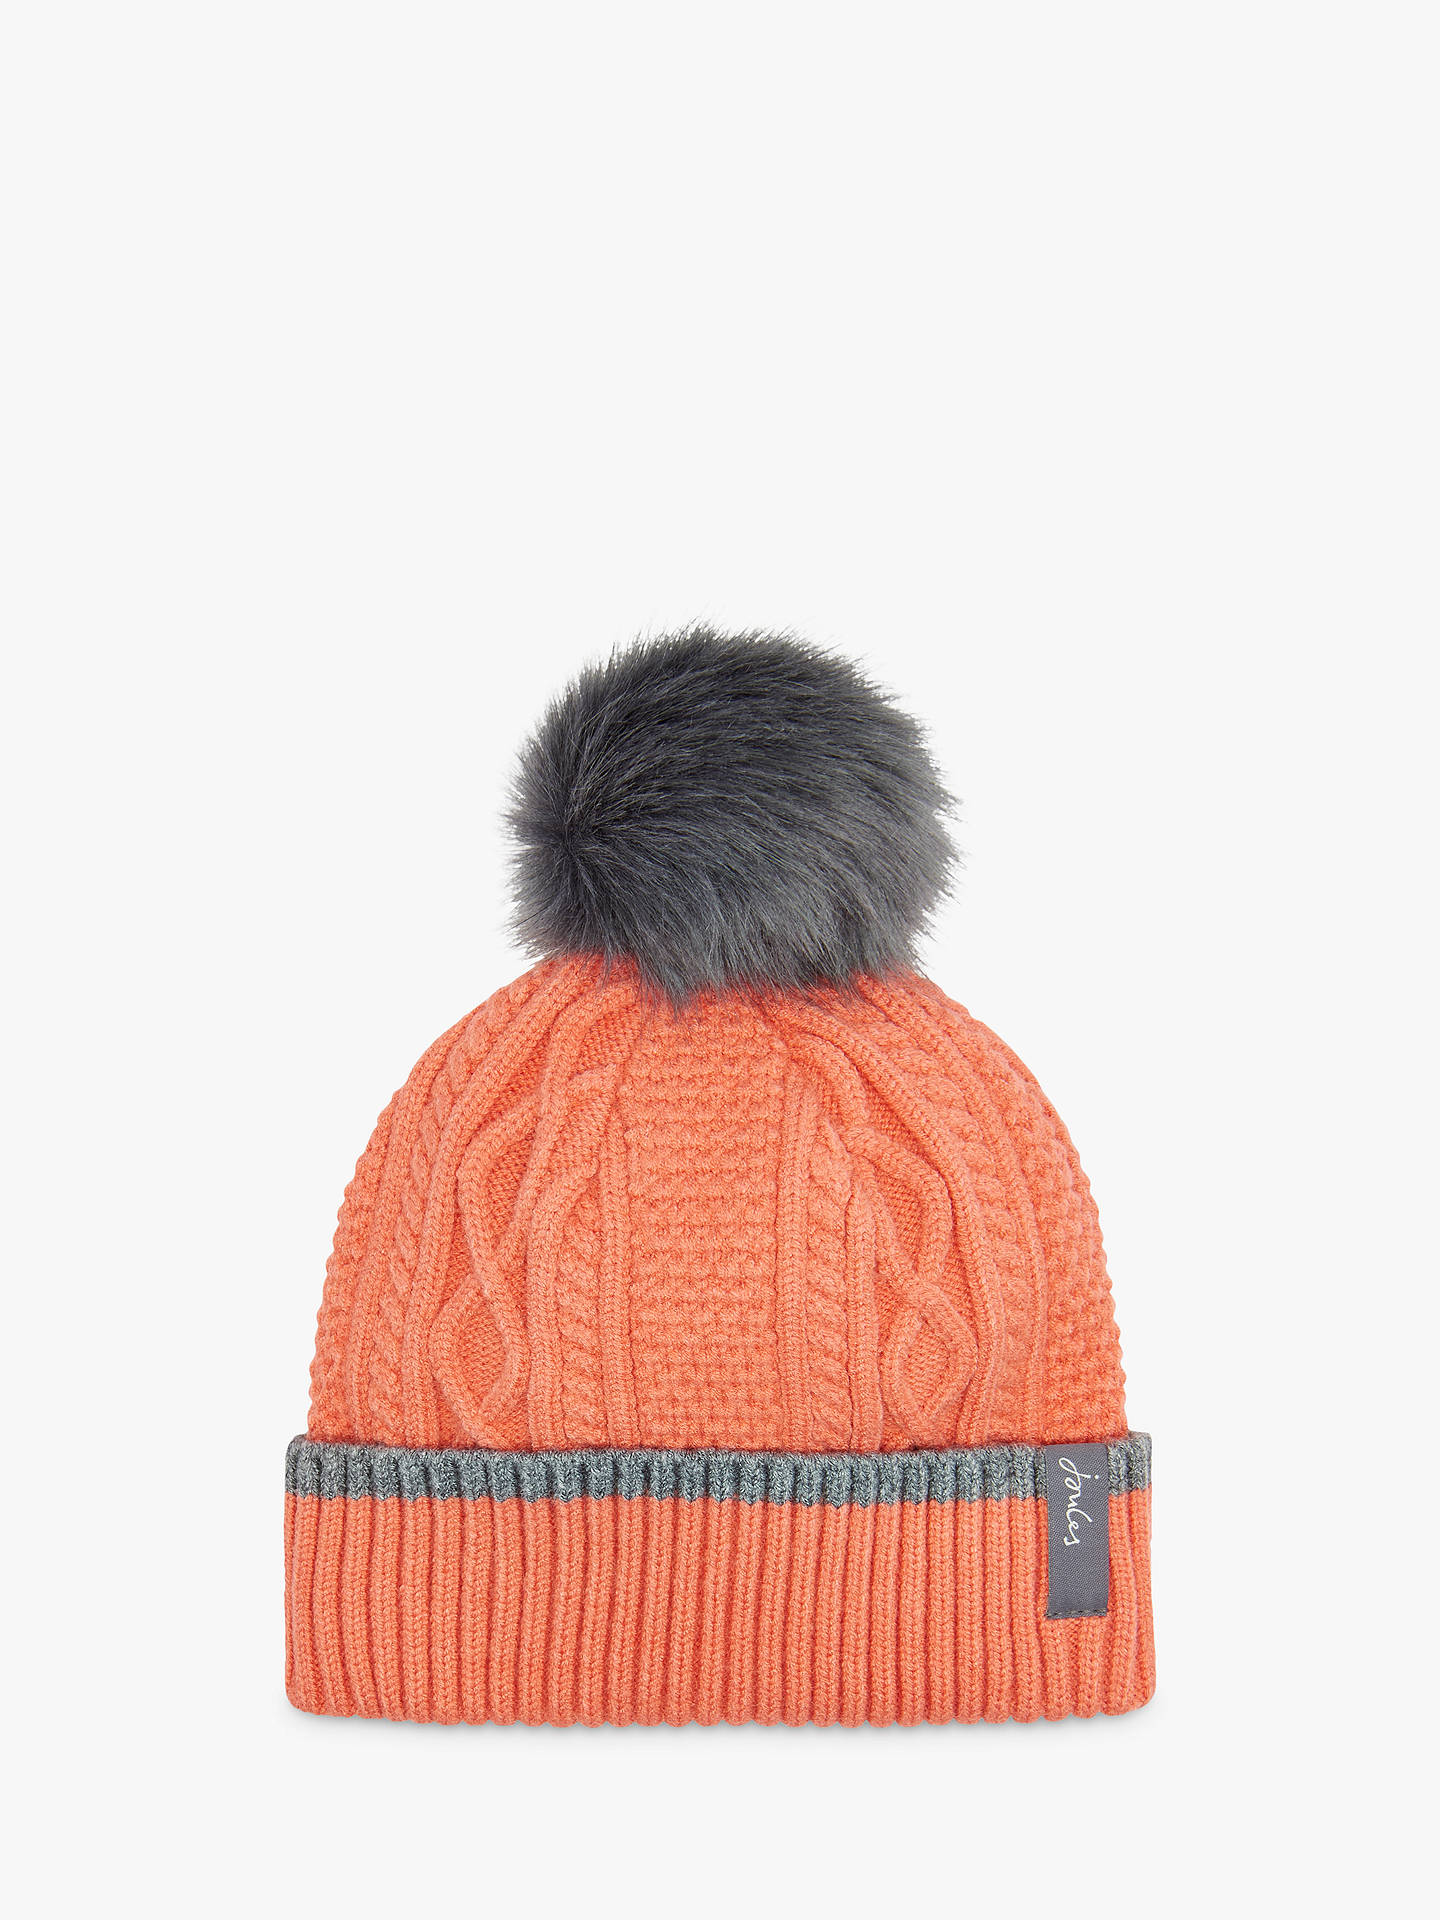 Joules Anya Bobble Cable Knit Hat at John Lewis   Partners 112770115f9